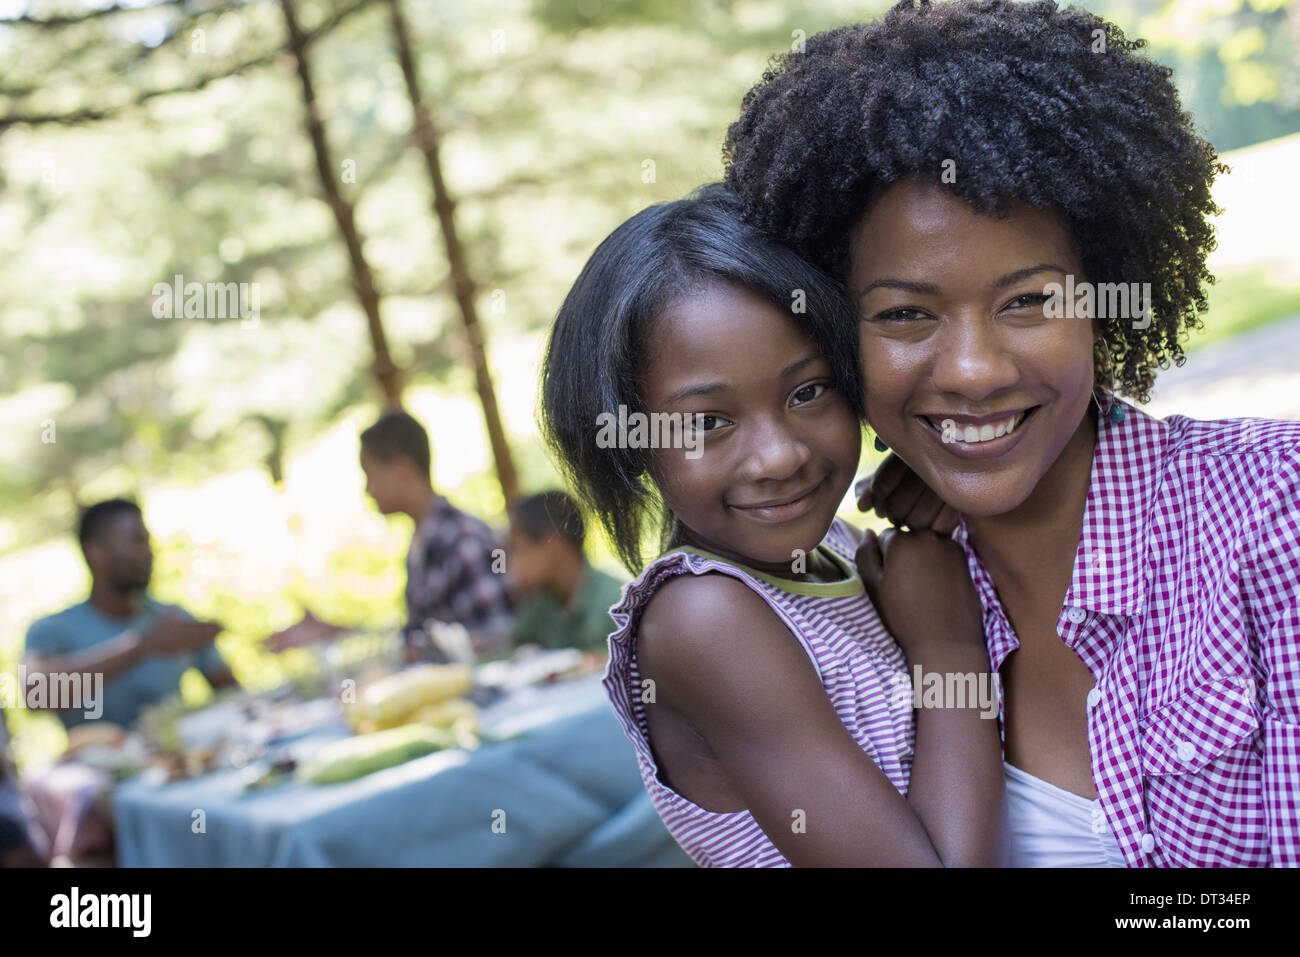 A young girl and adults seated at the table - Stock Image